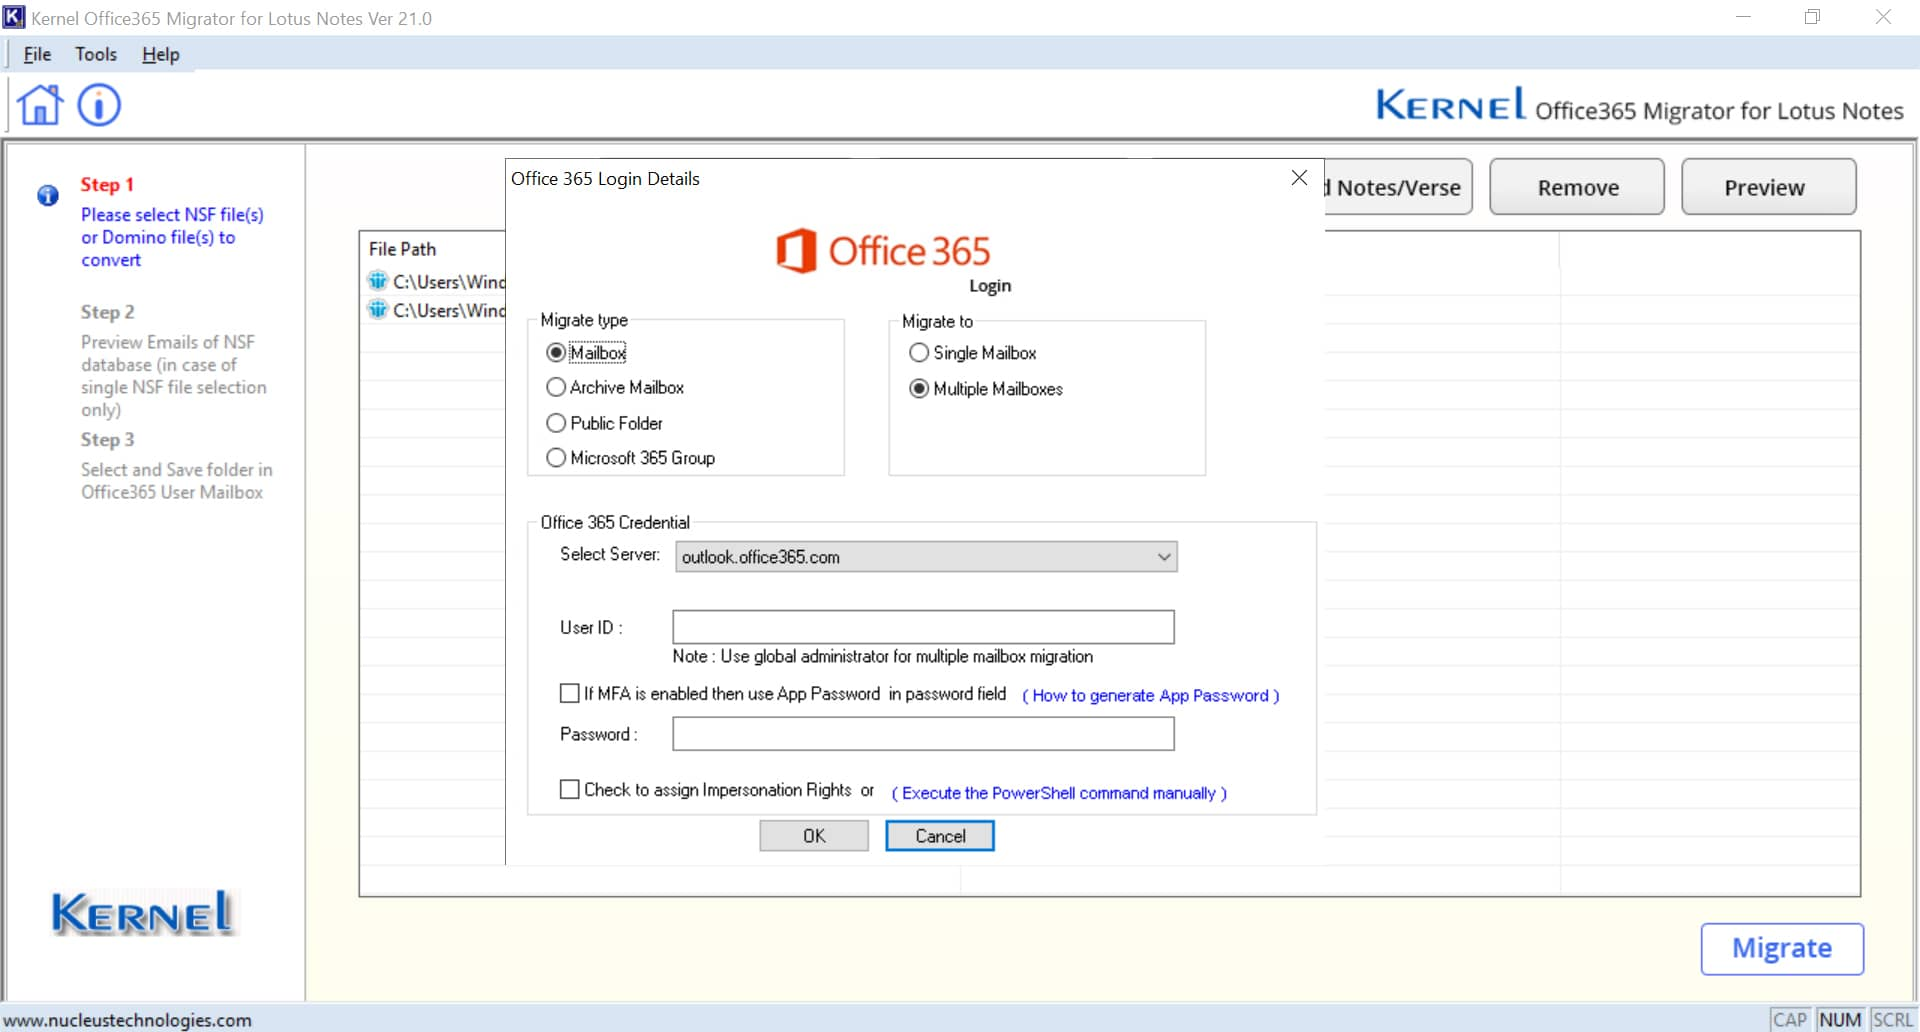 Provide the login details of the Microsoft 365 account